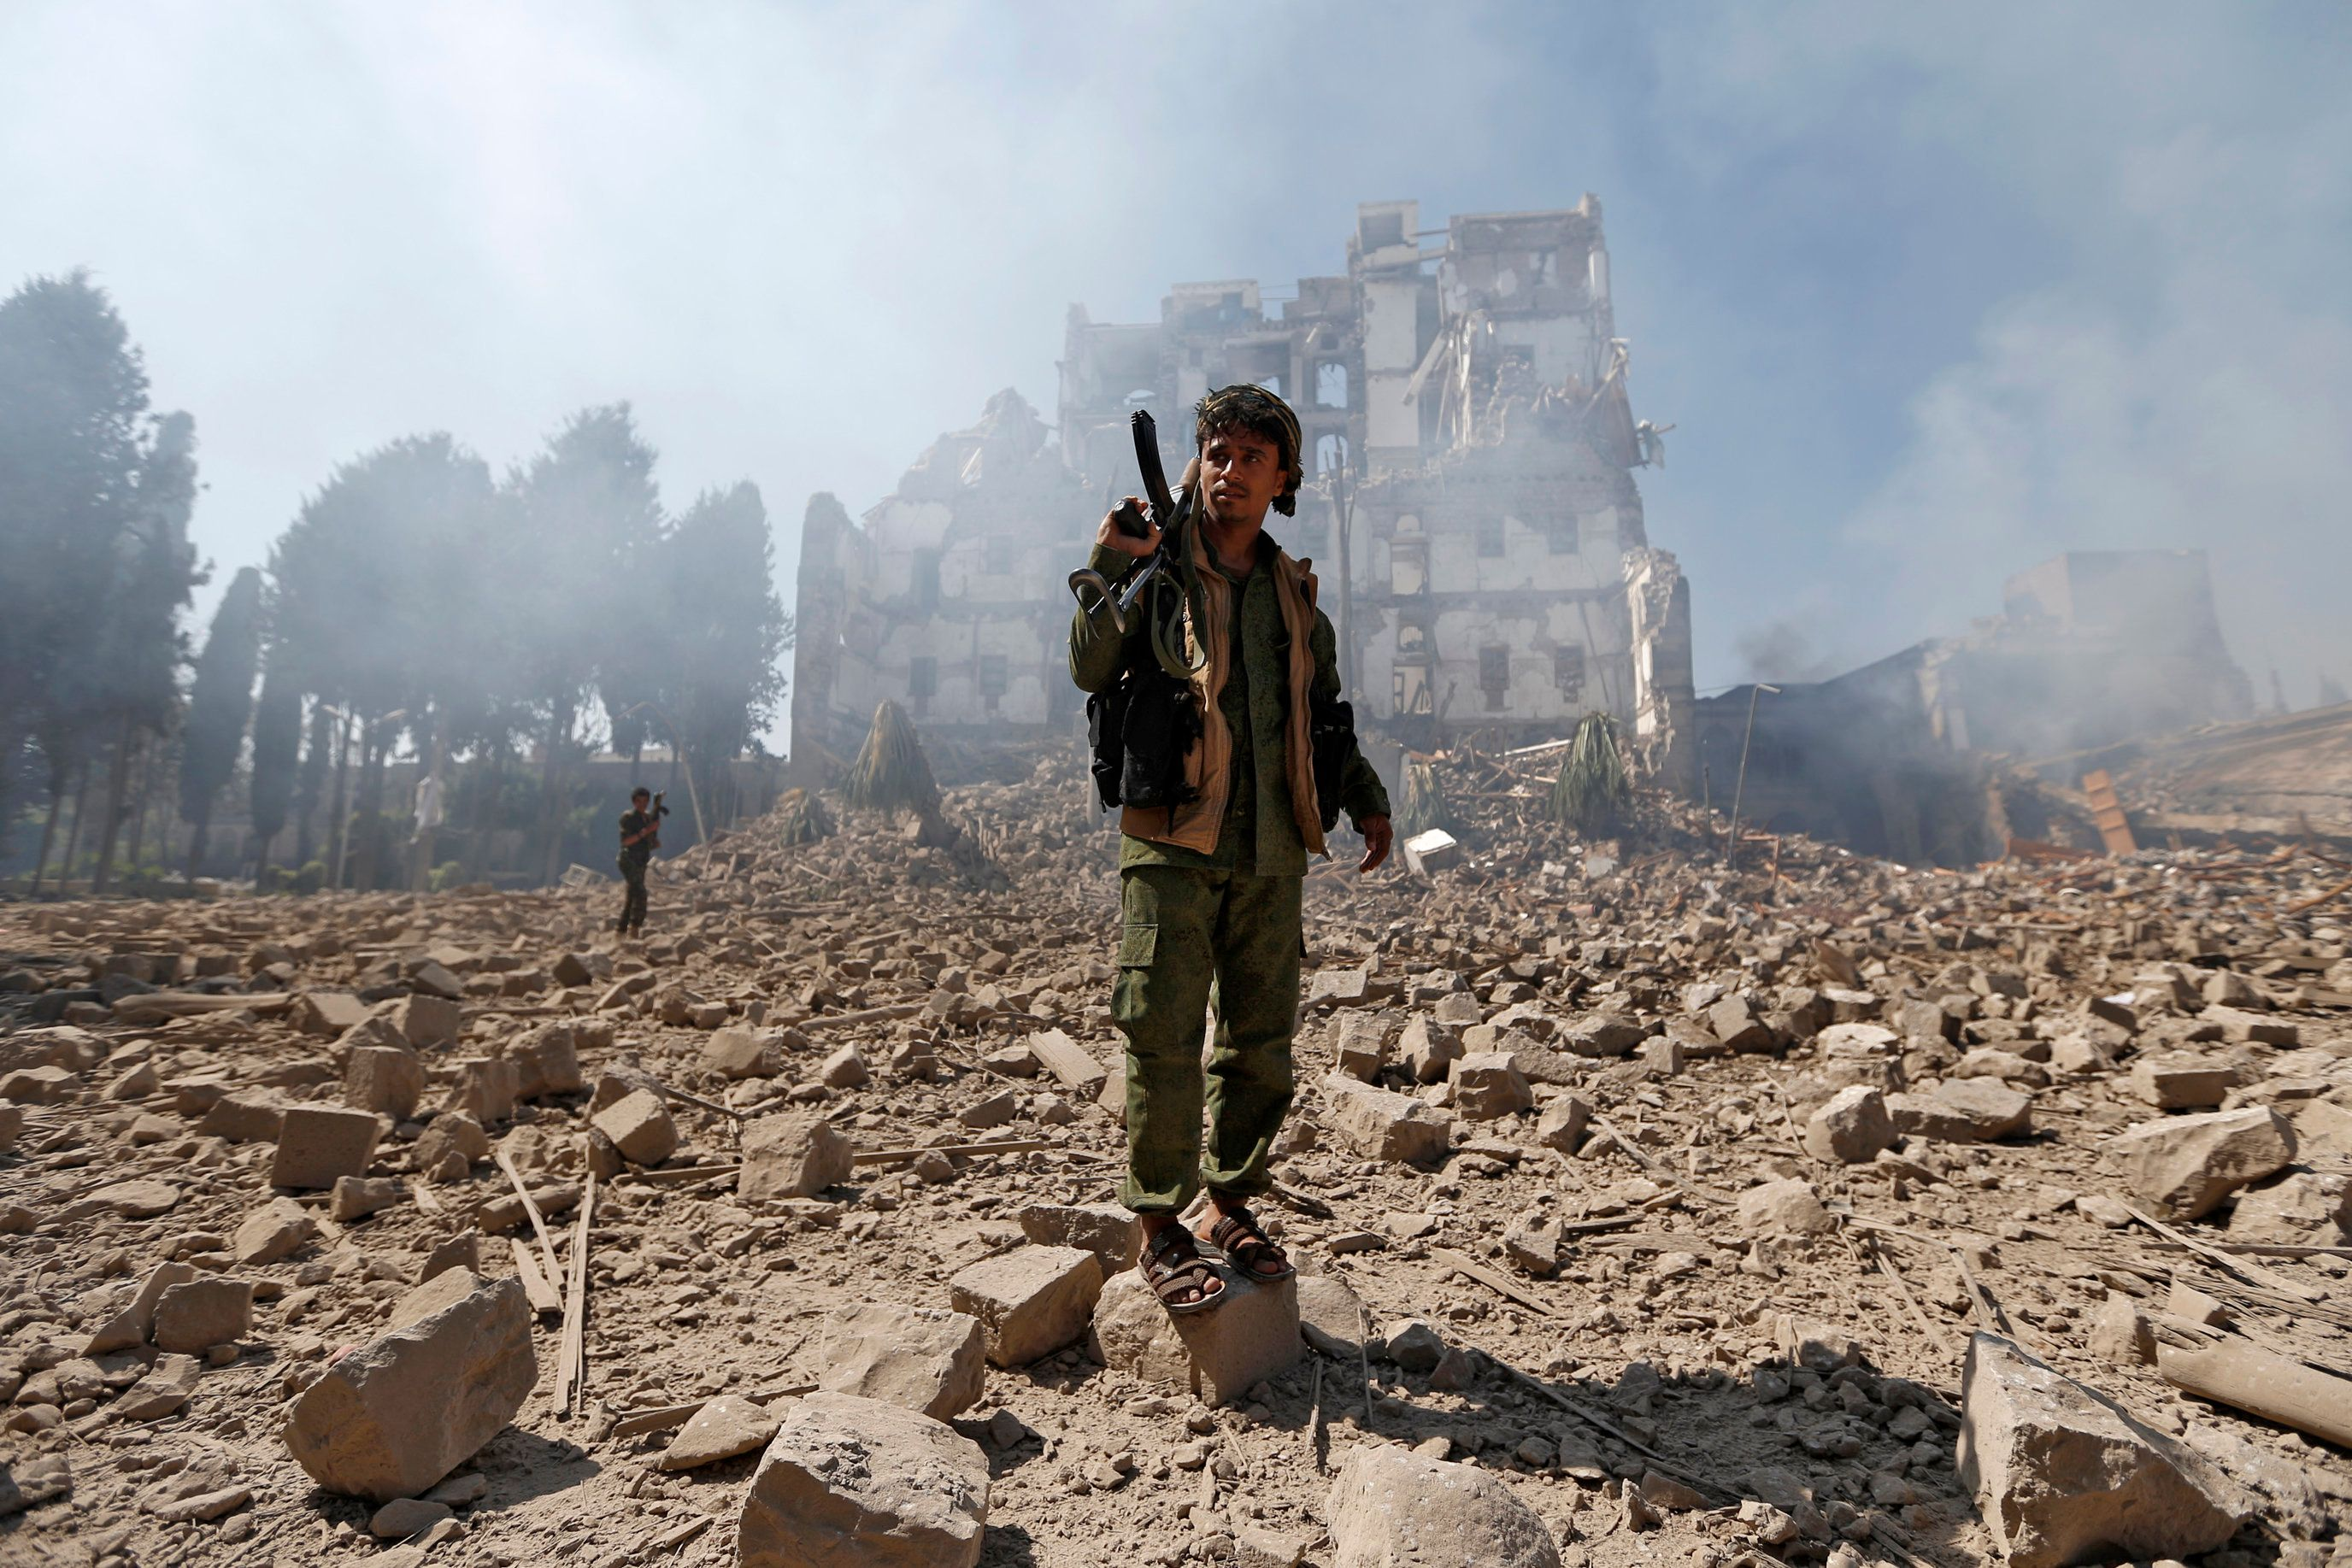 Saudi-led warplanes targeted the presidential palace in the Yemeni capital of Sana'a, held by Houthi rebel forces, in a Dec.